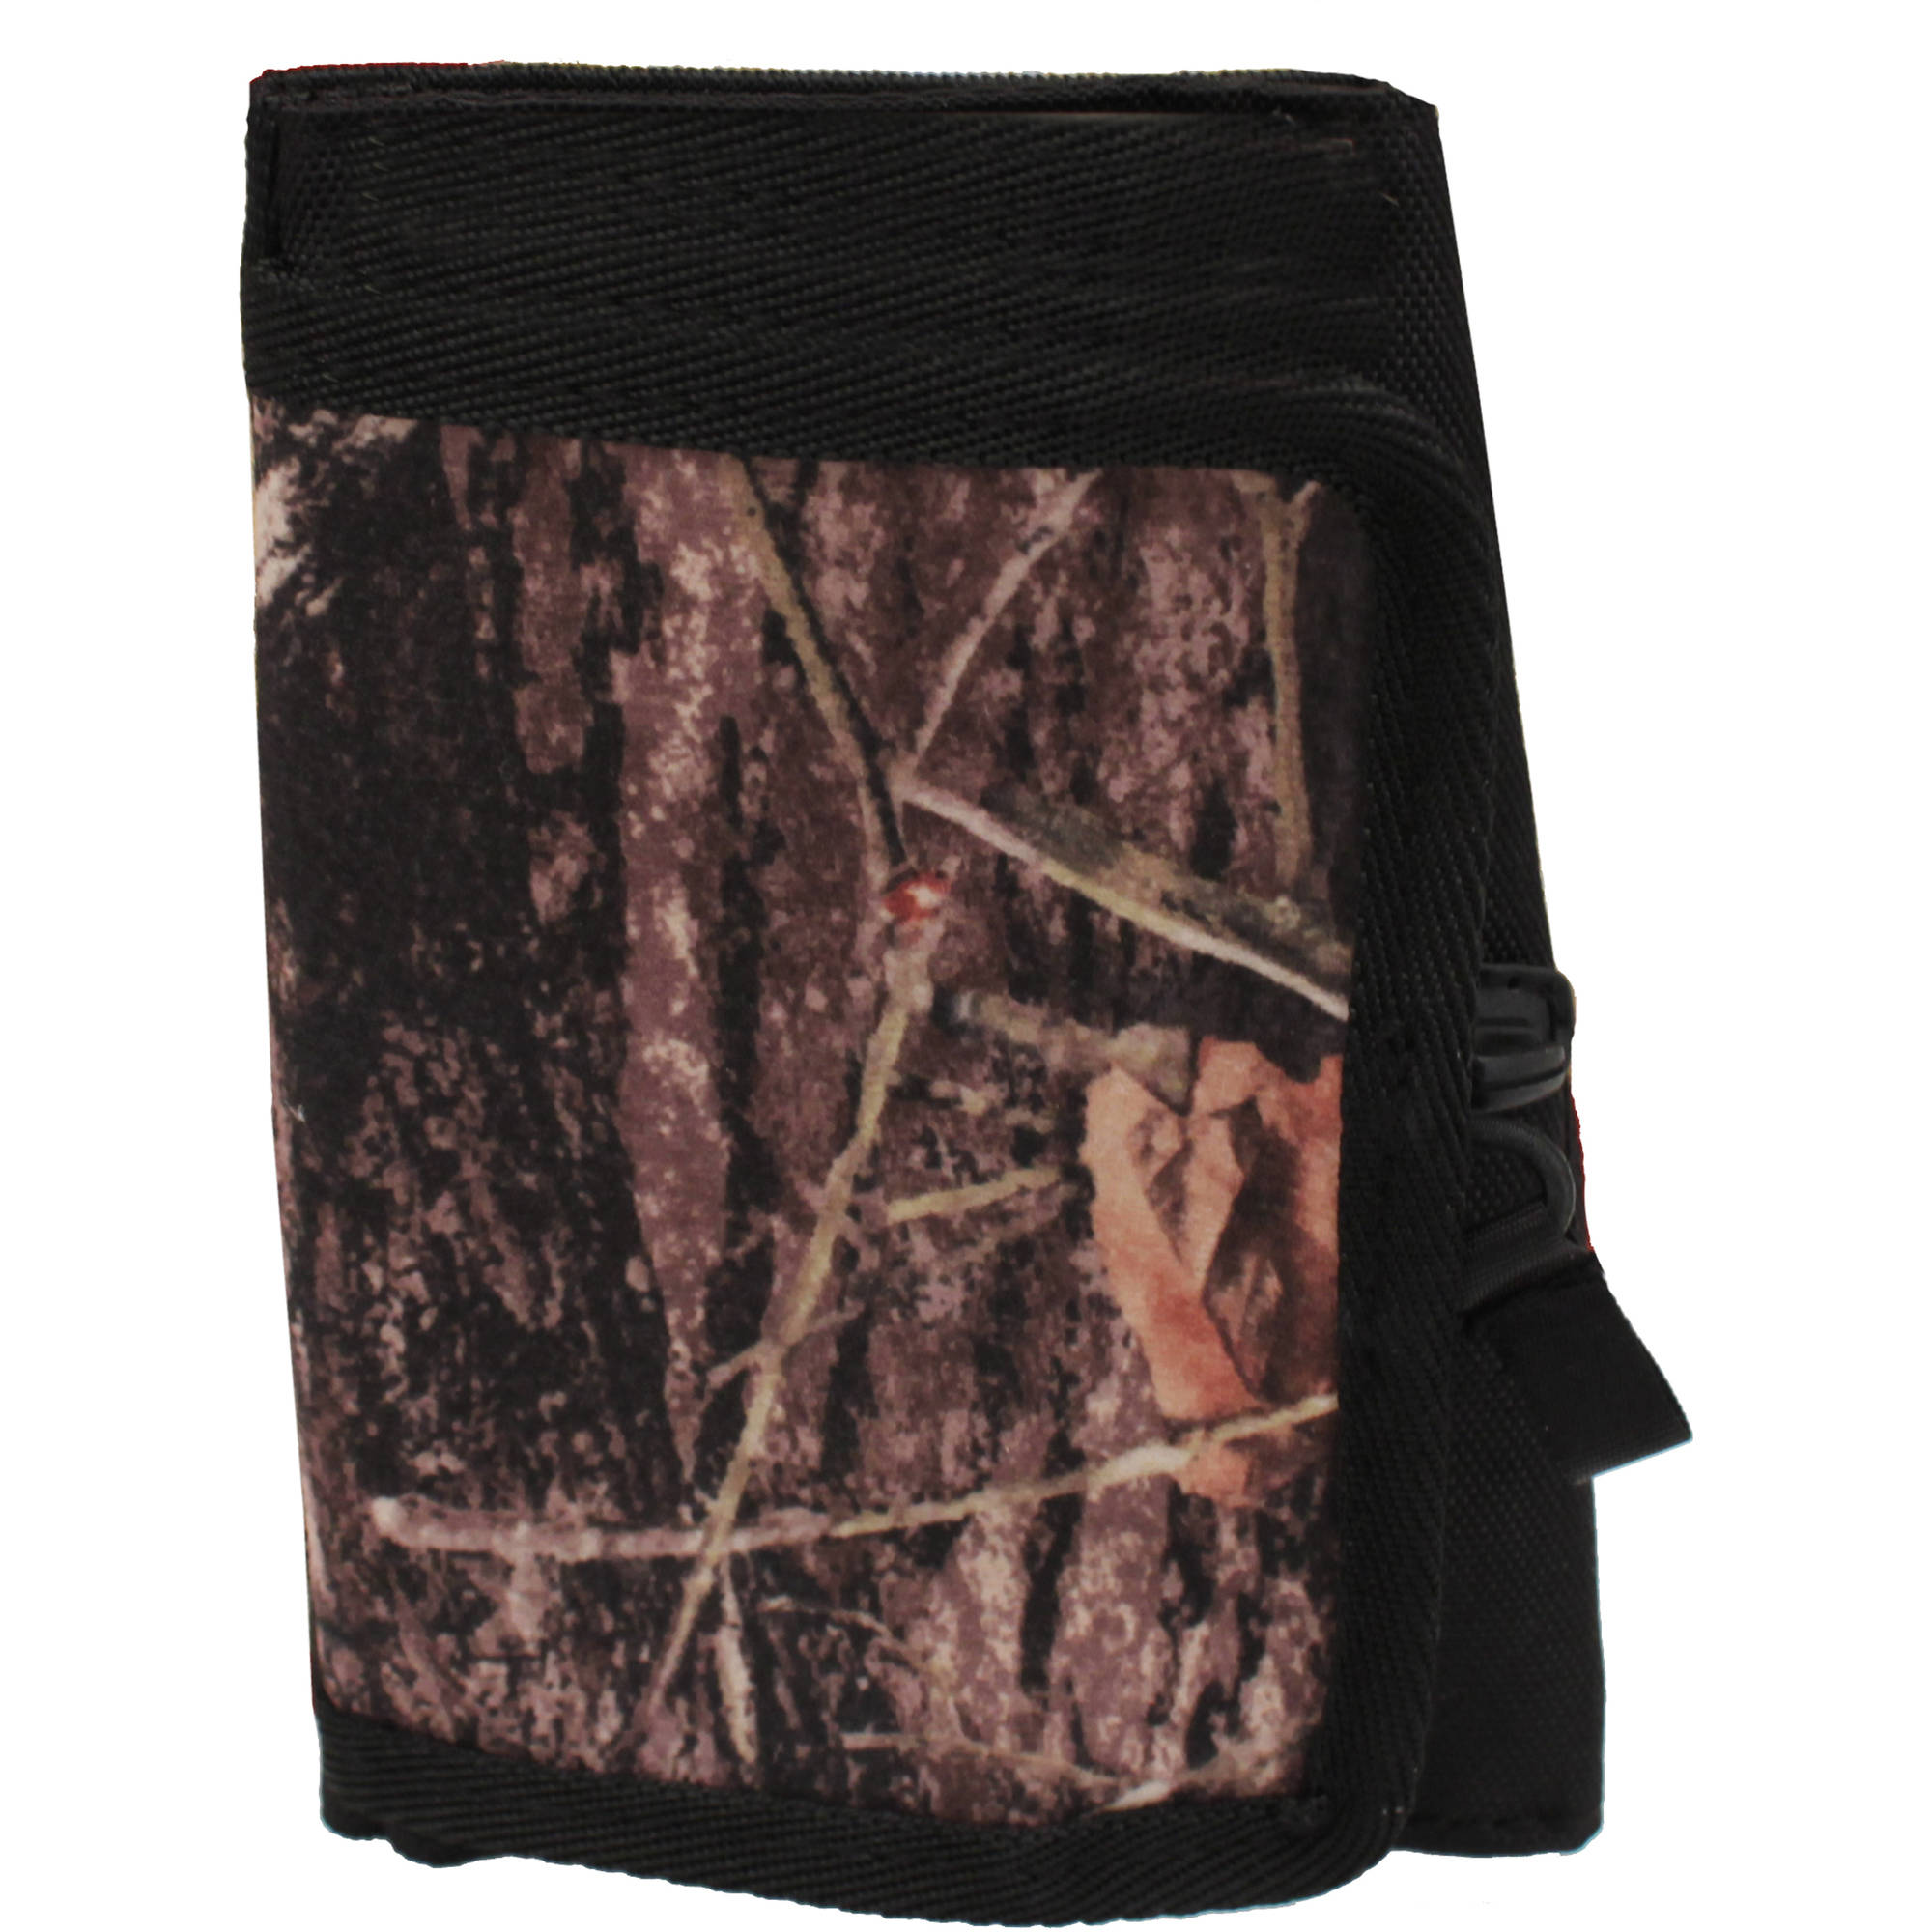 Allen Cases Buttstock Shell Holder withCover, Break-Up Camo by Allen Cases